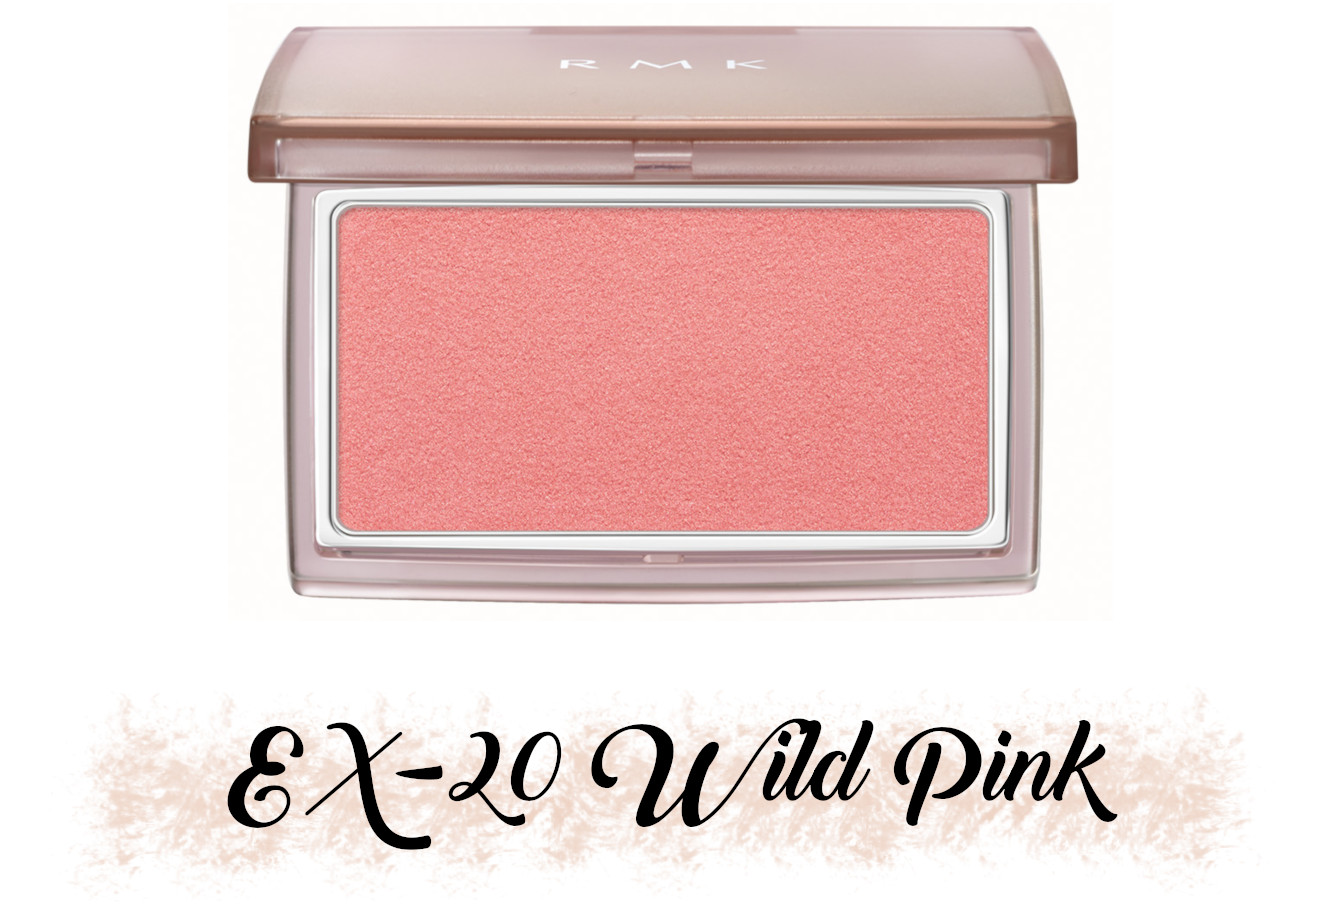 RMK Fall 2021 Collection Rosewood Daydream Ingenious Powder Cheeks N EX-20 Wild Pink